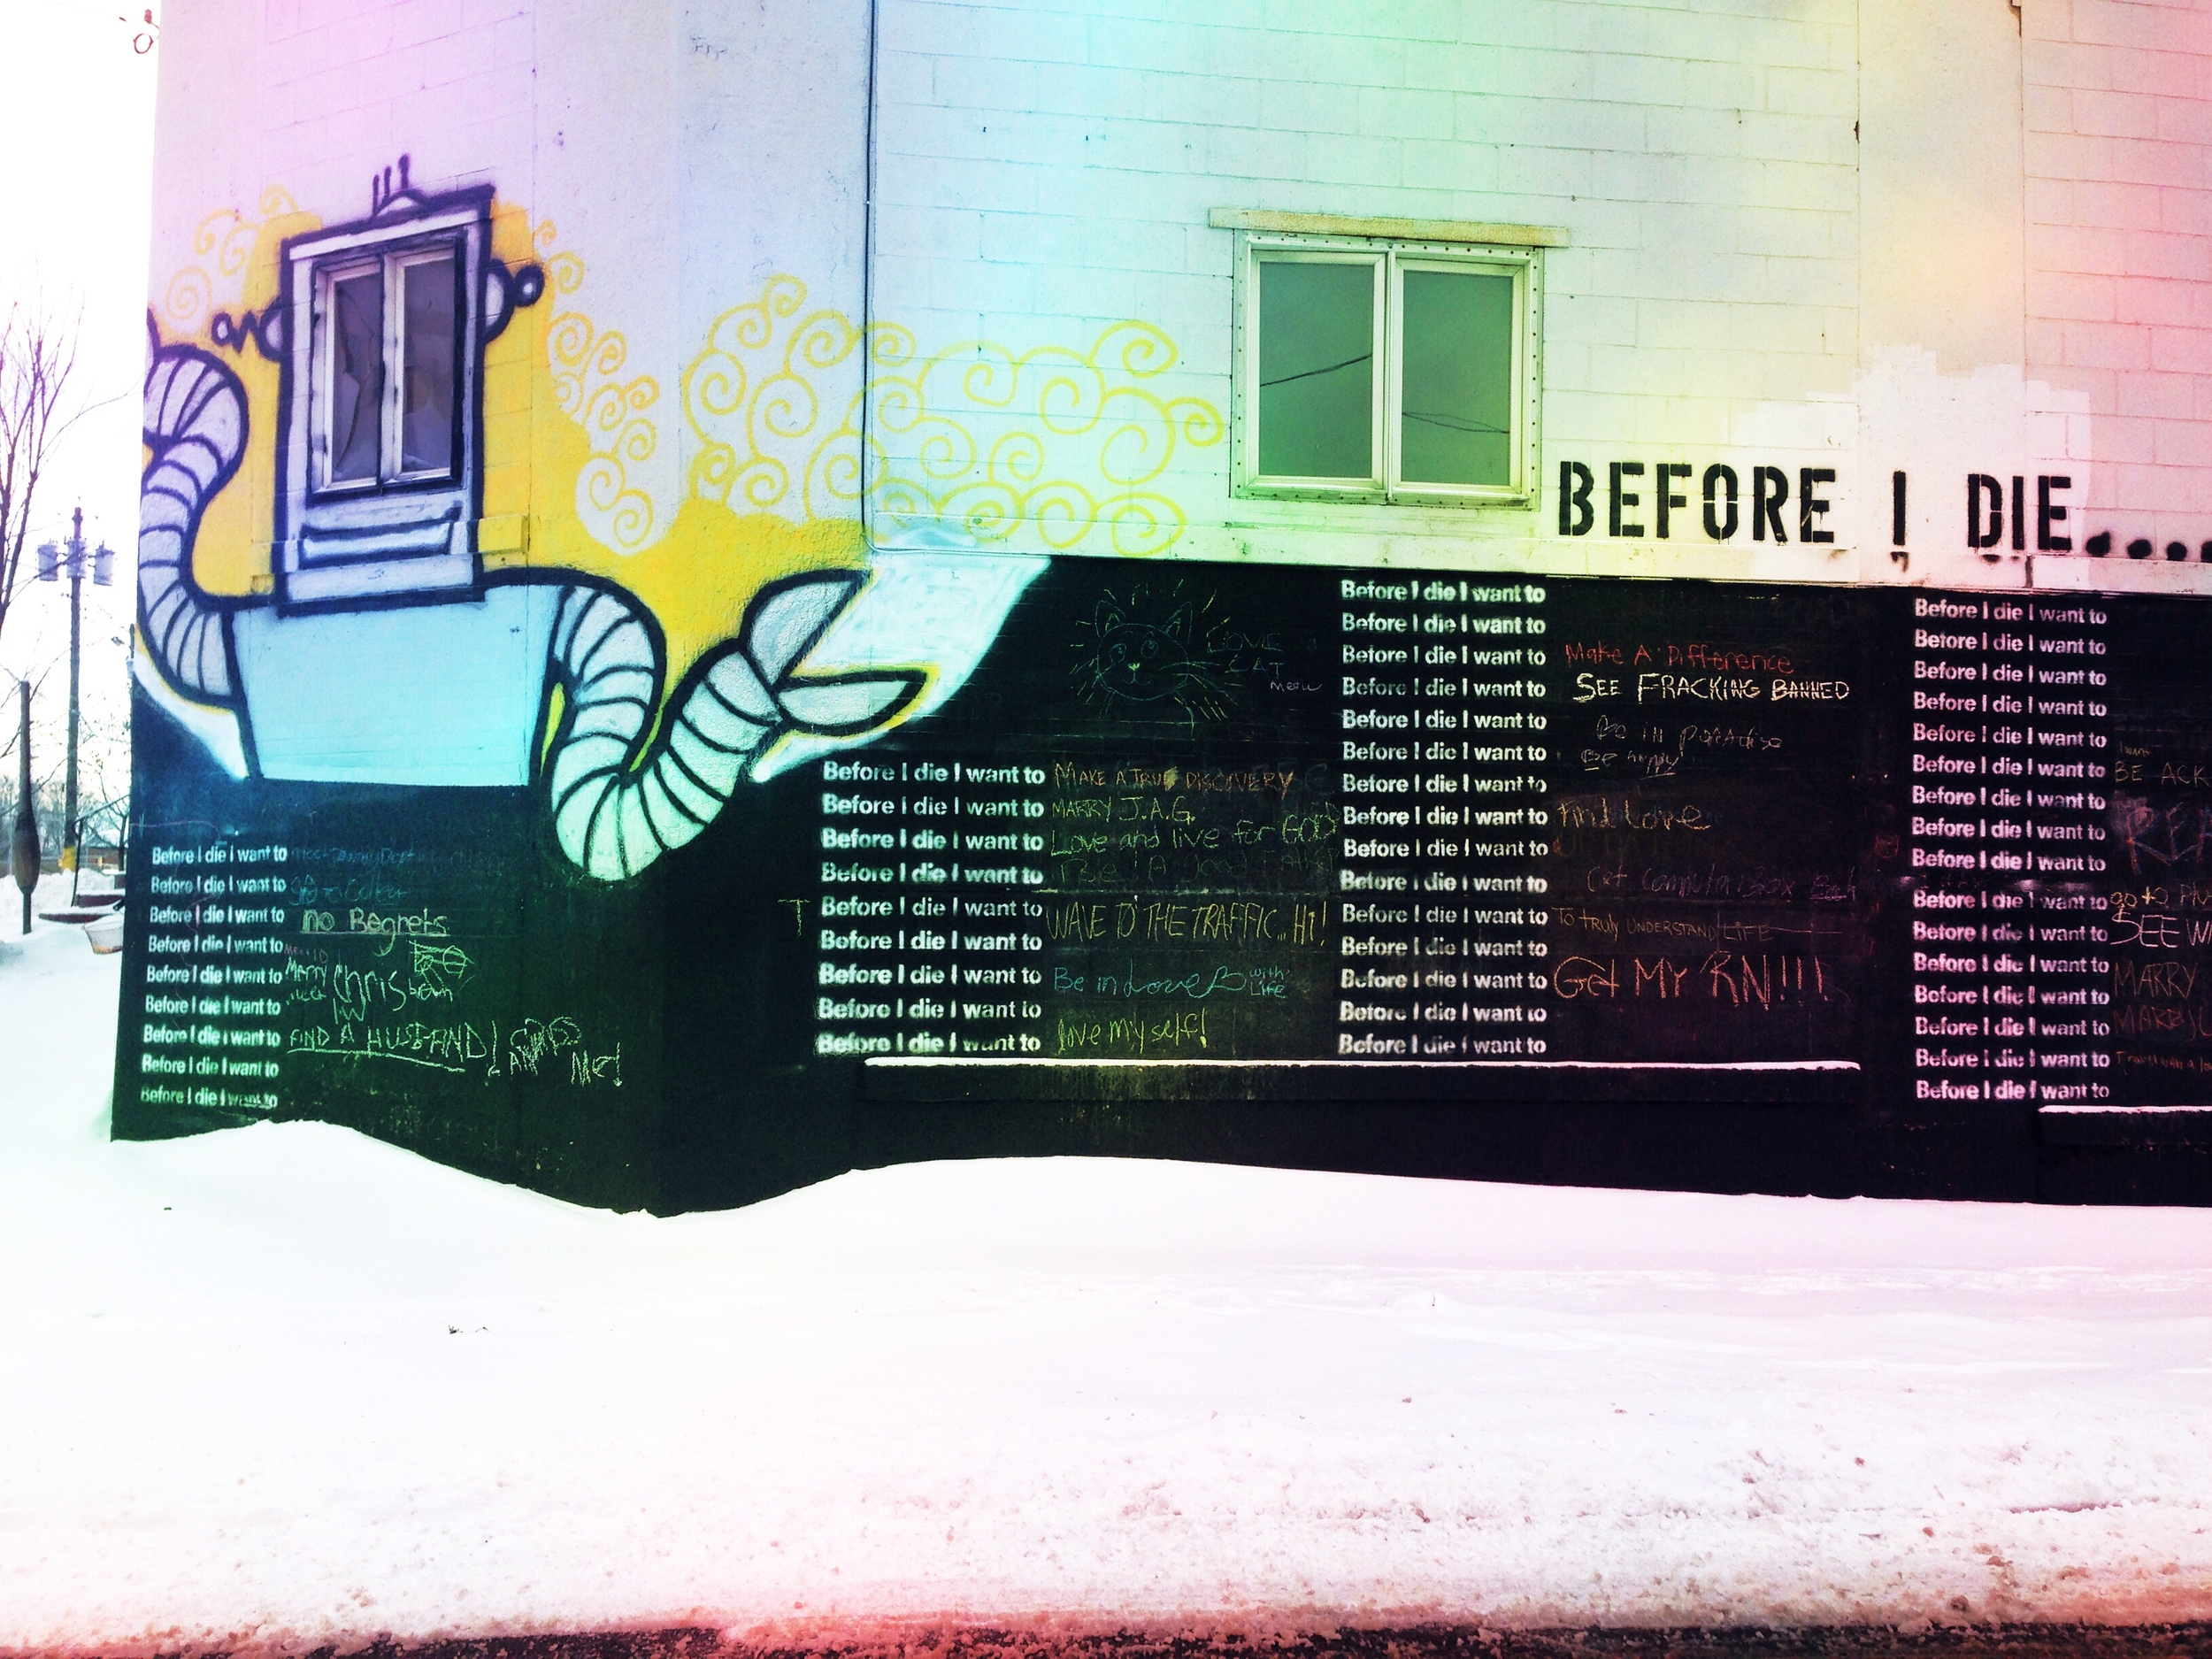 This mural stopped me in my tracks. What do you want to do before you die?